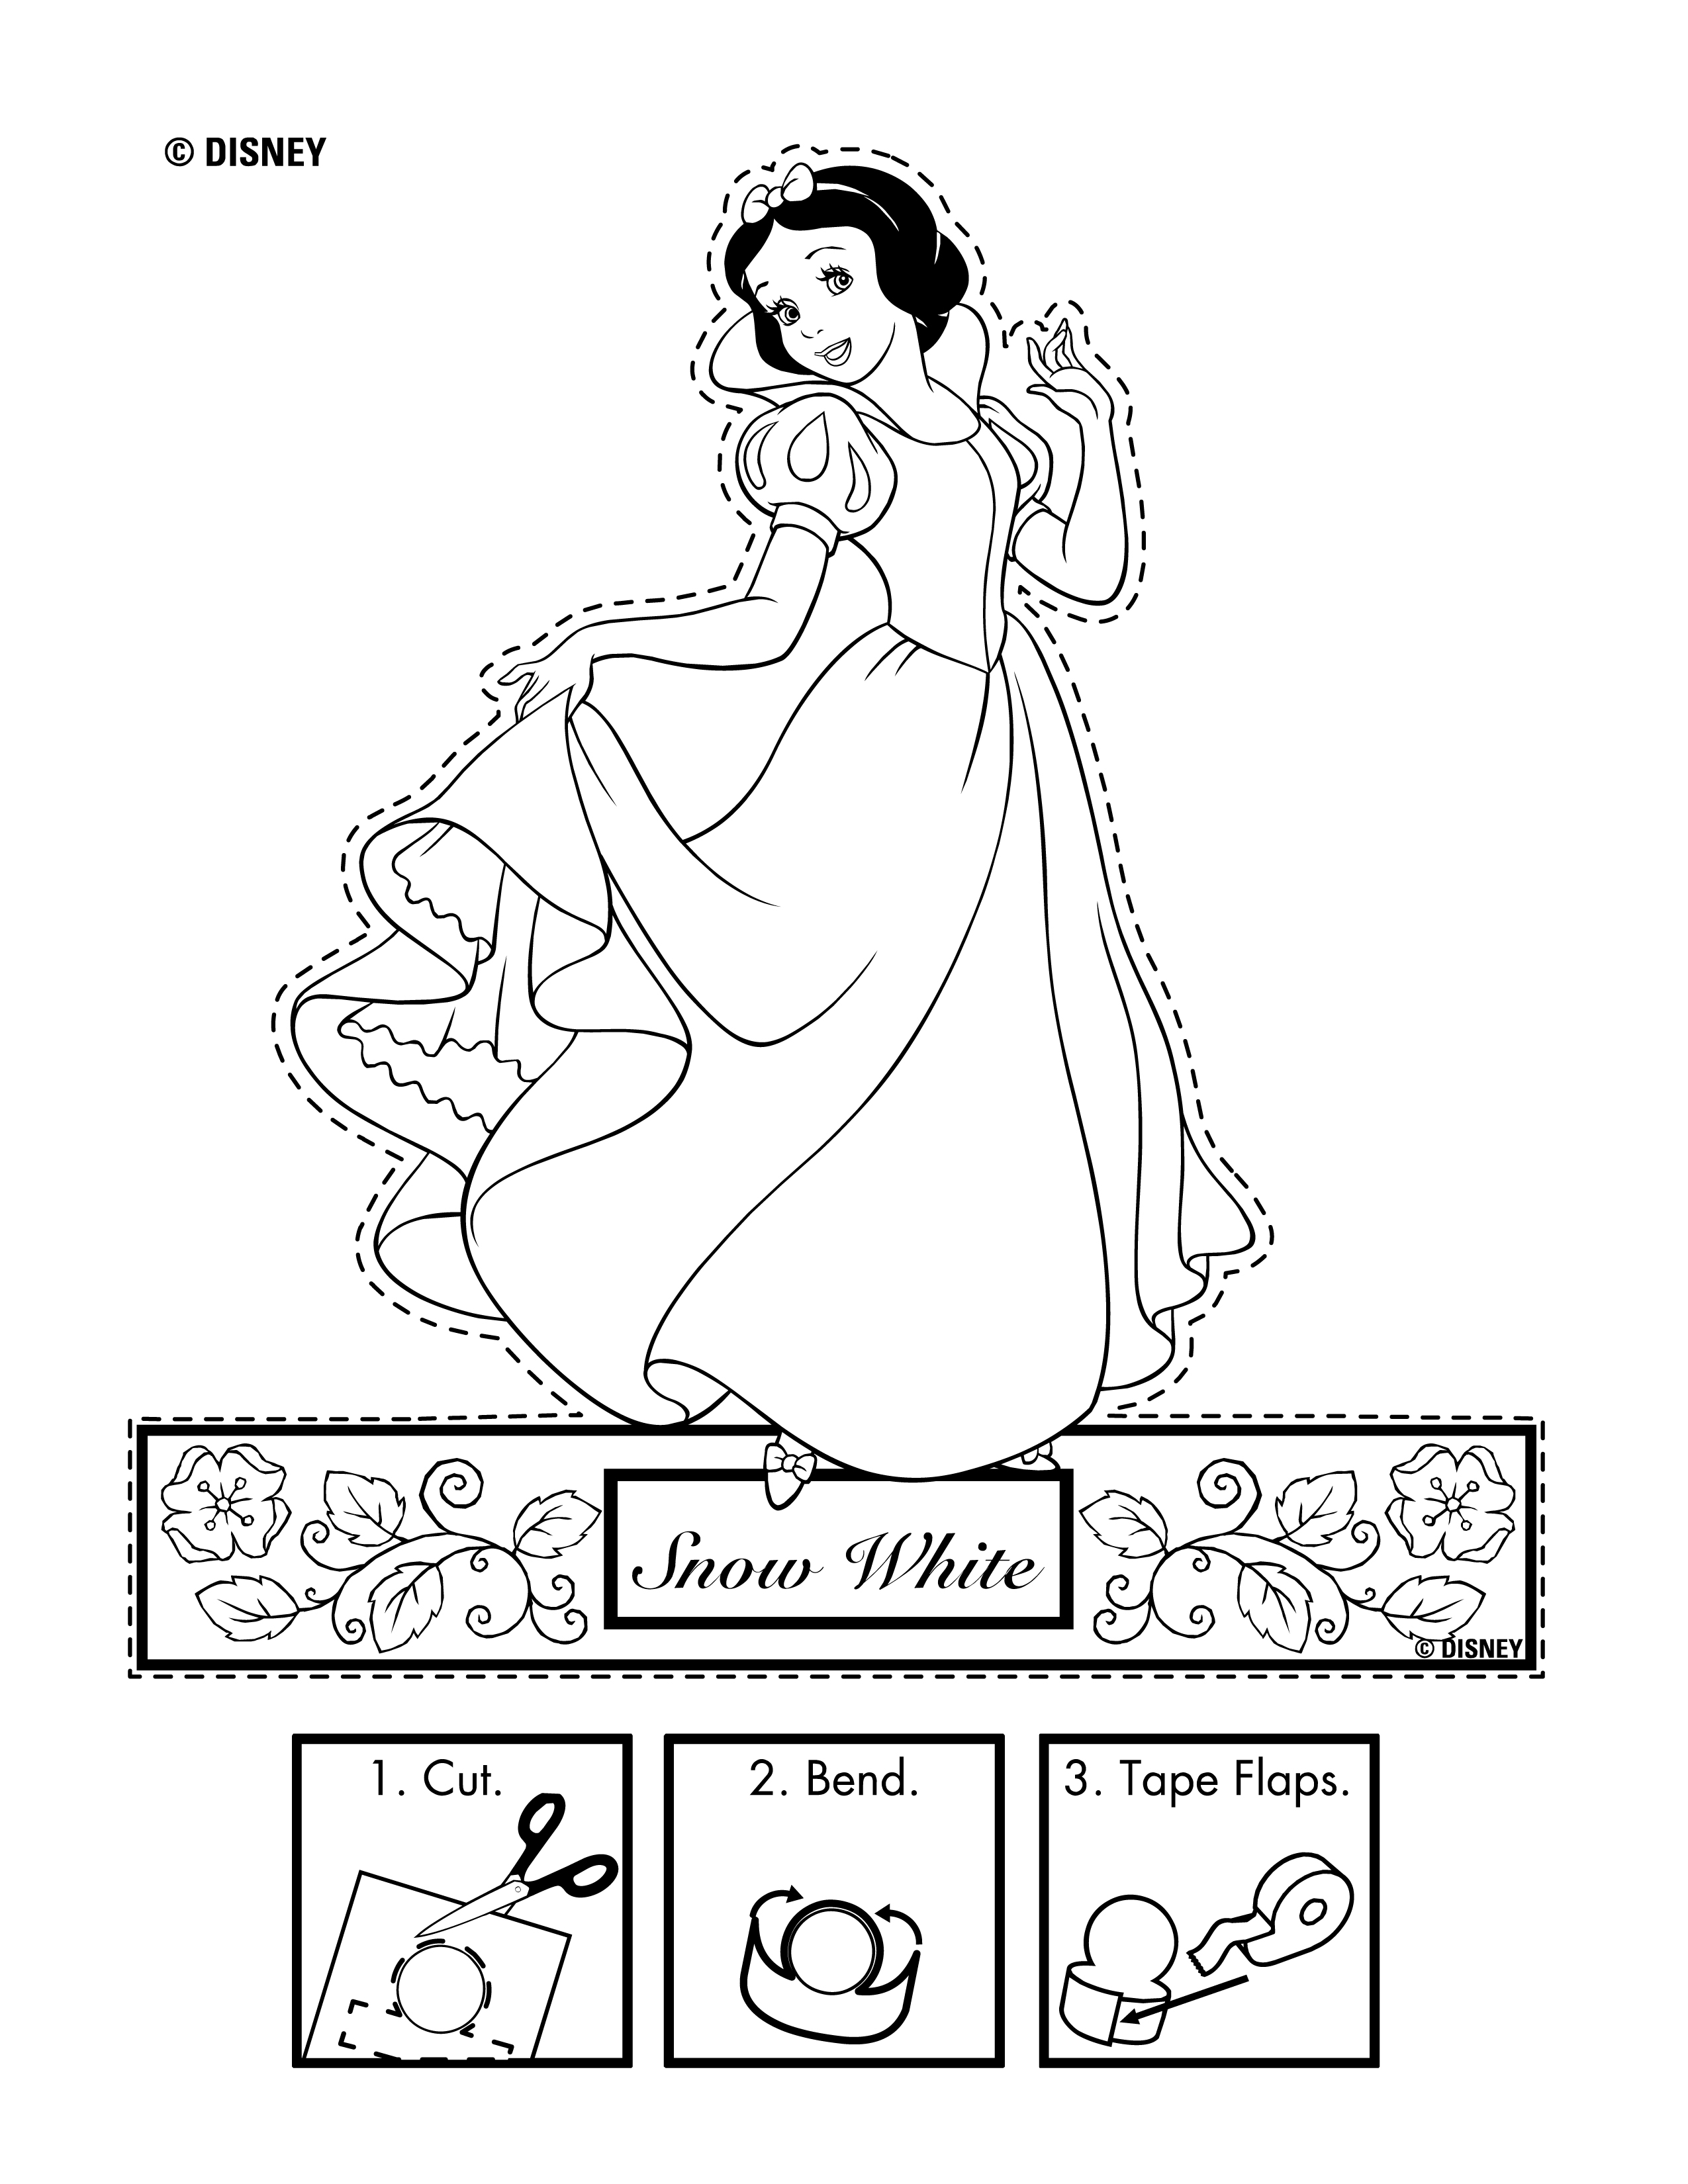 Disney Snow White Printables Coloring Pages And Activities Skgaleana